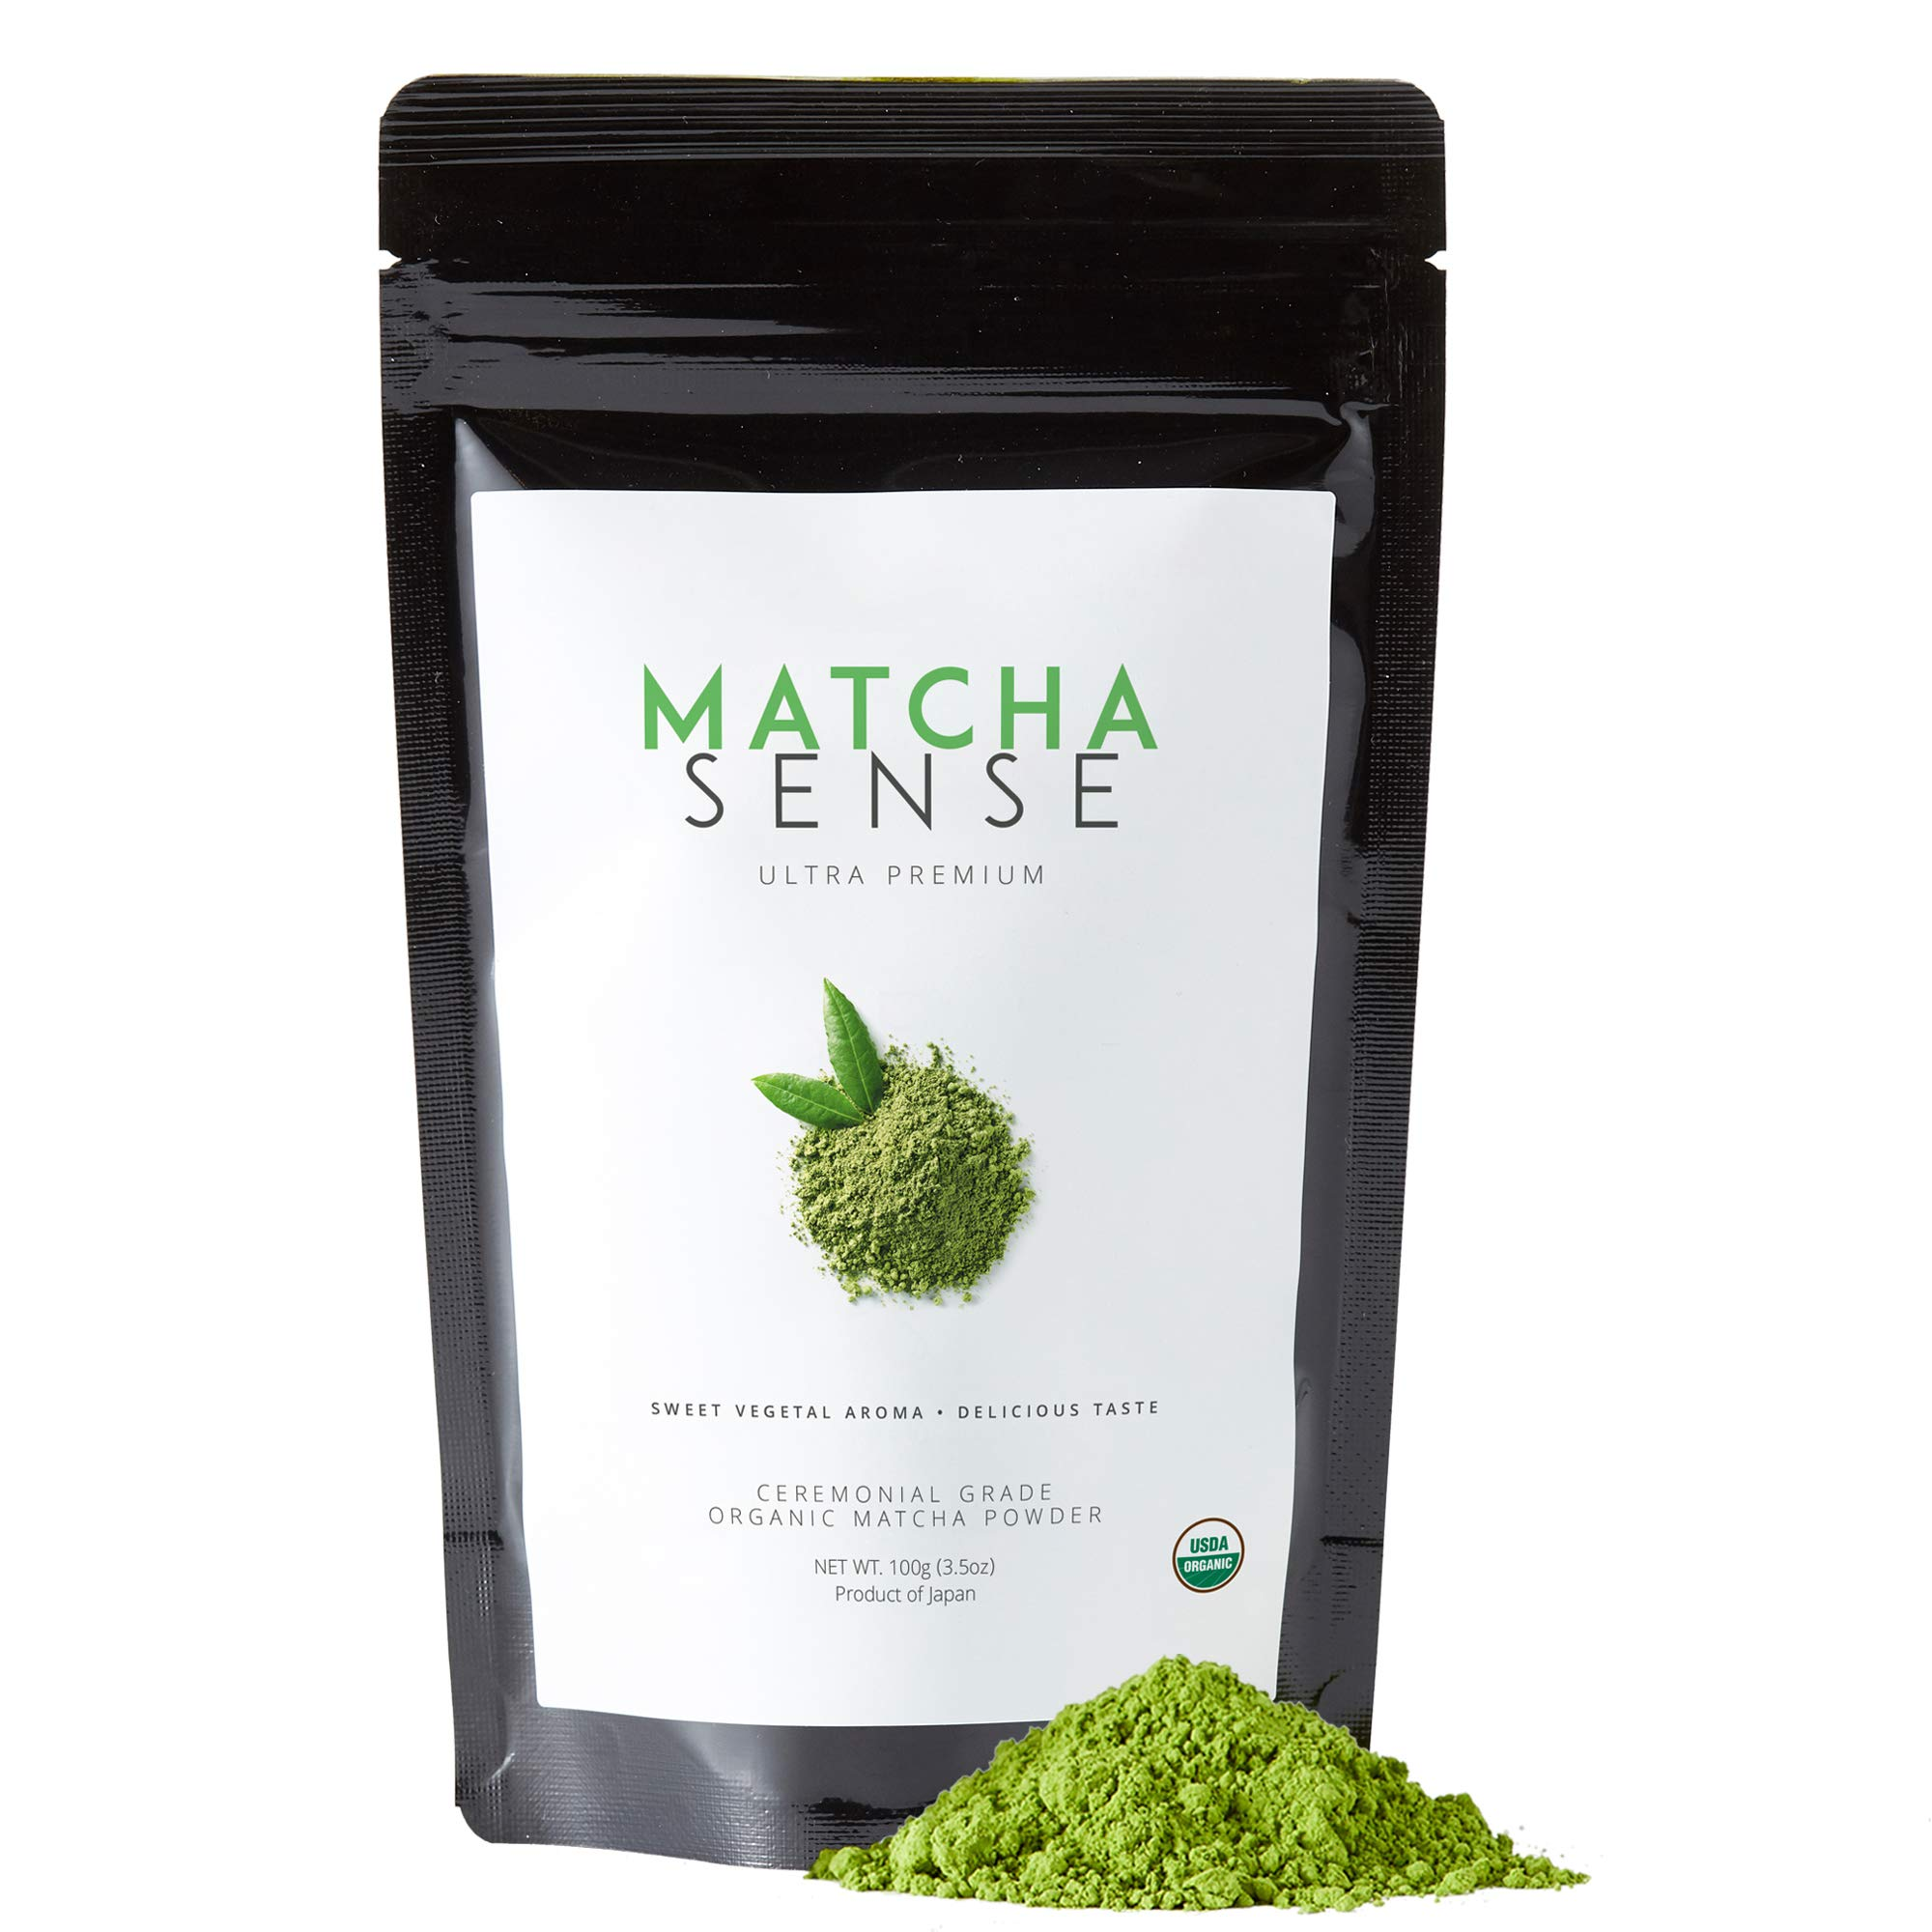 Matcha Sense - Organic Matcha Green Tea Powder Ceremonial Grade - Energy, Detox, Japanese Origin, Pure & Unsweetened - Easy Resealable Pouch - 100g Value Size by Matcha Sense